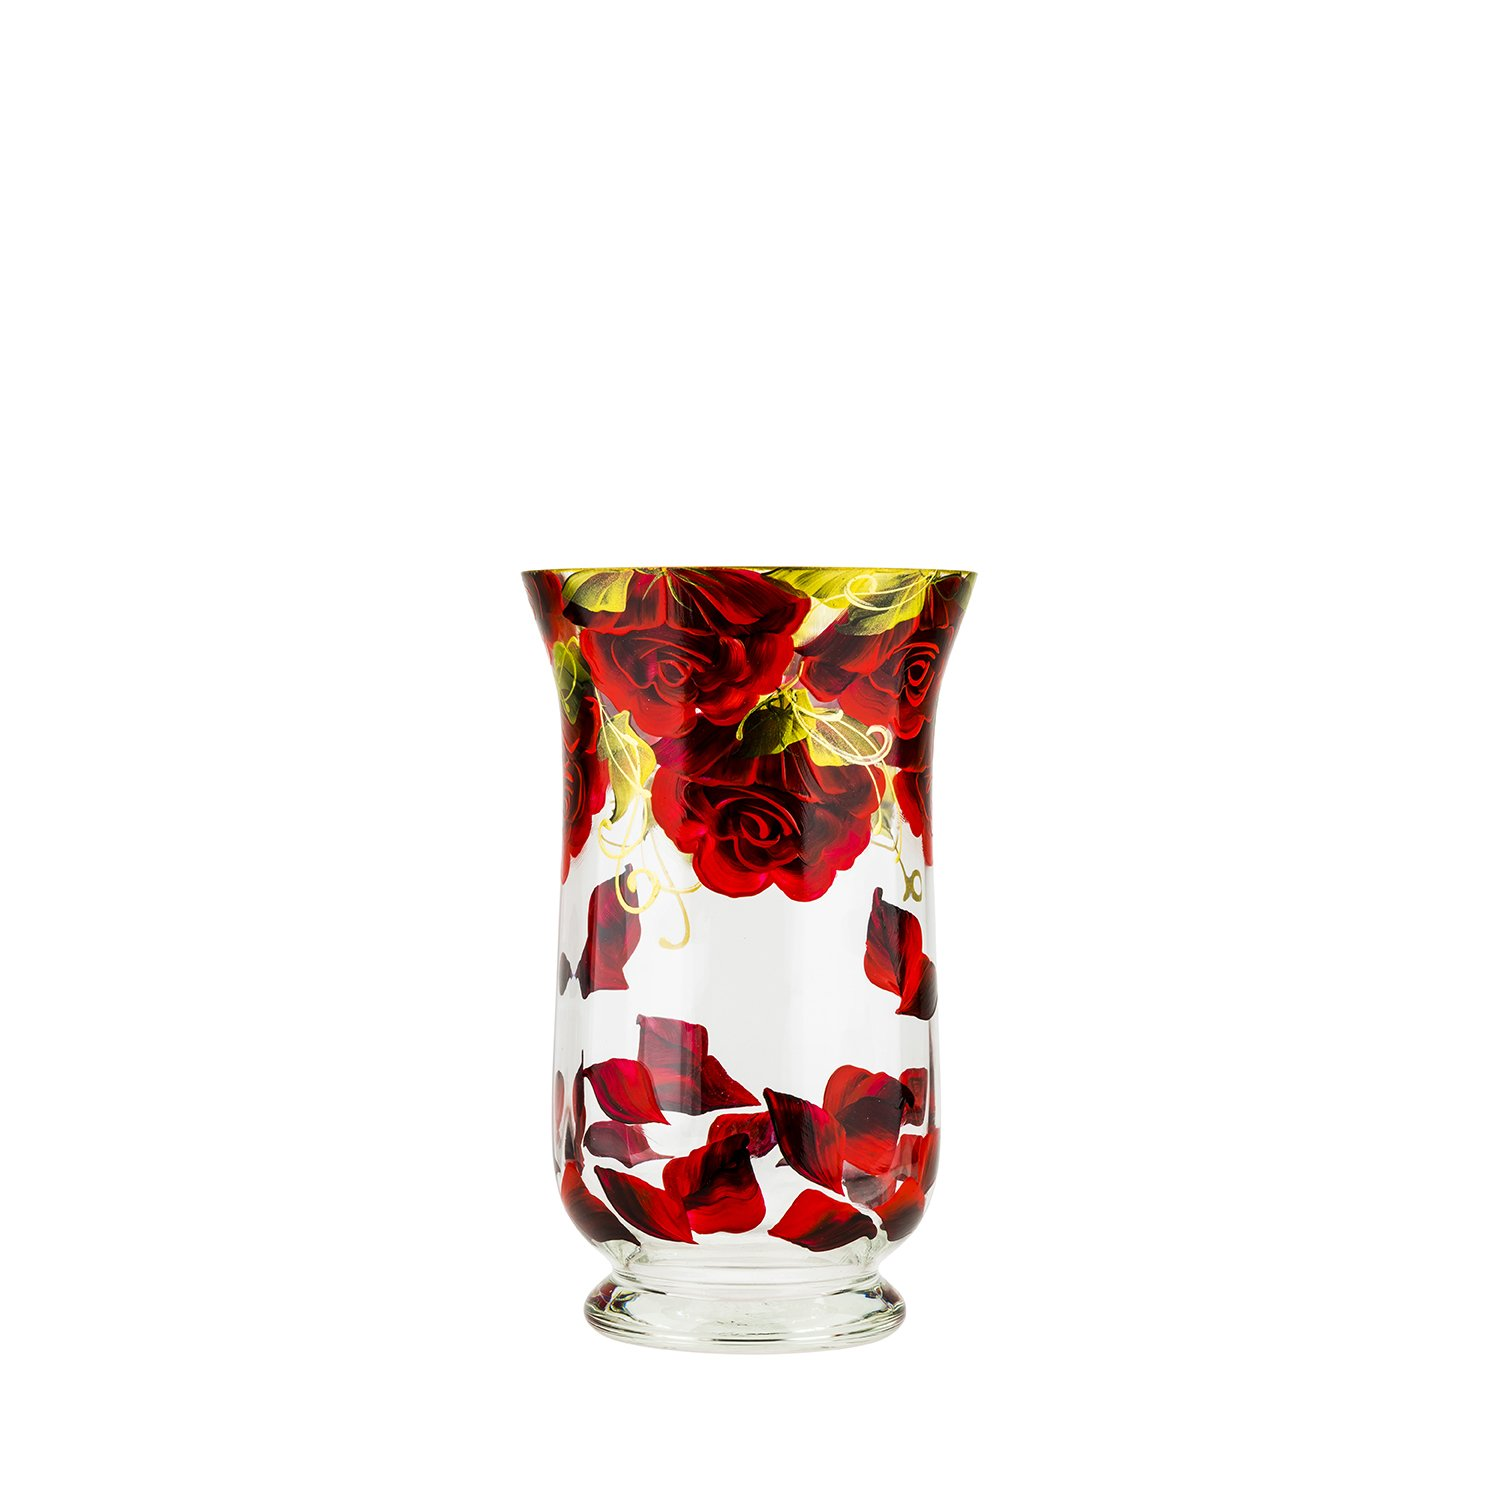 Victoria Bella Falling Red Rose-150 Vase by Jozefina Atelier